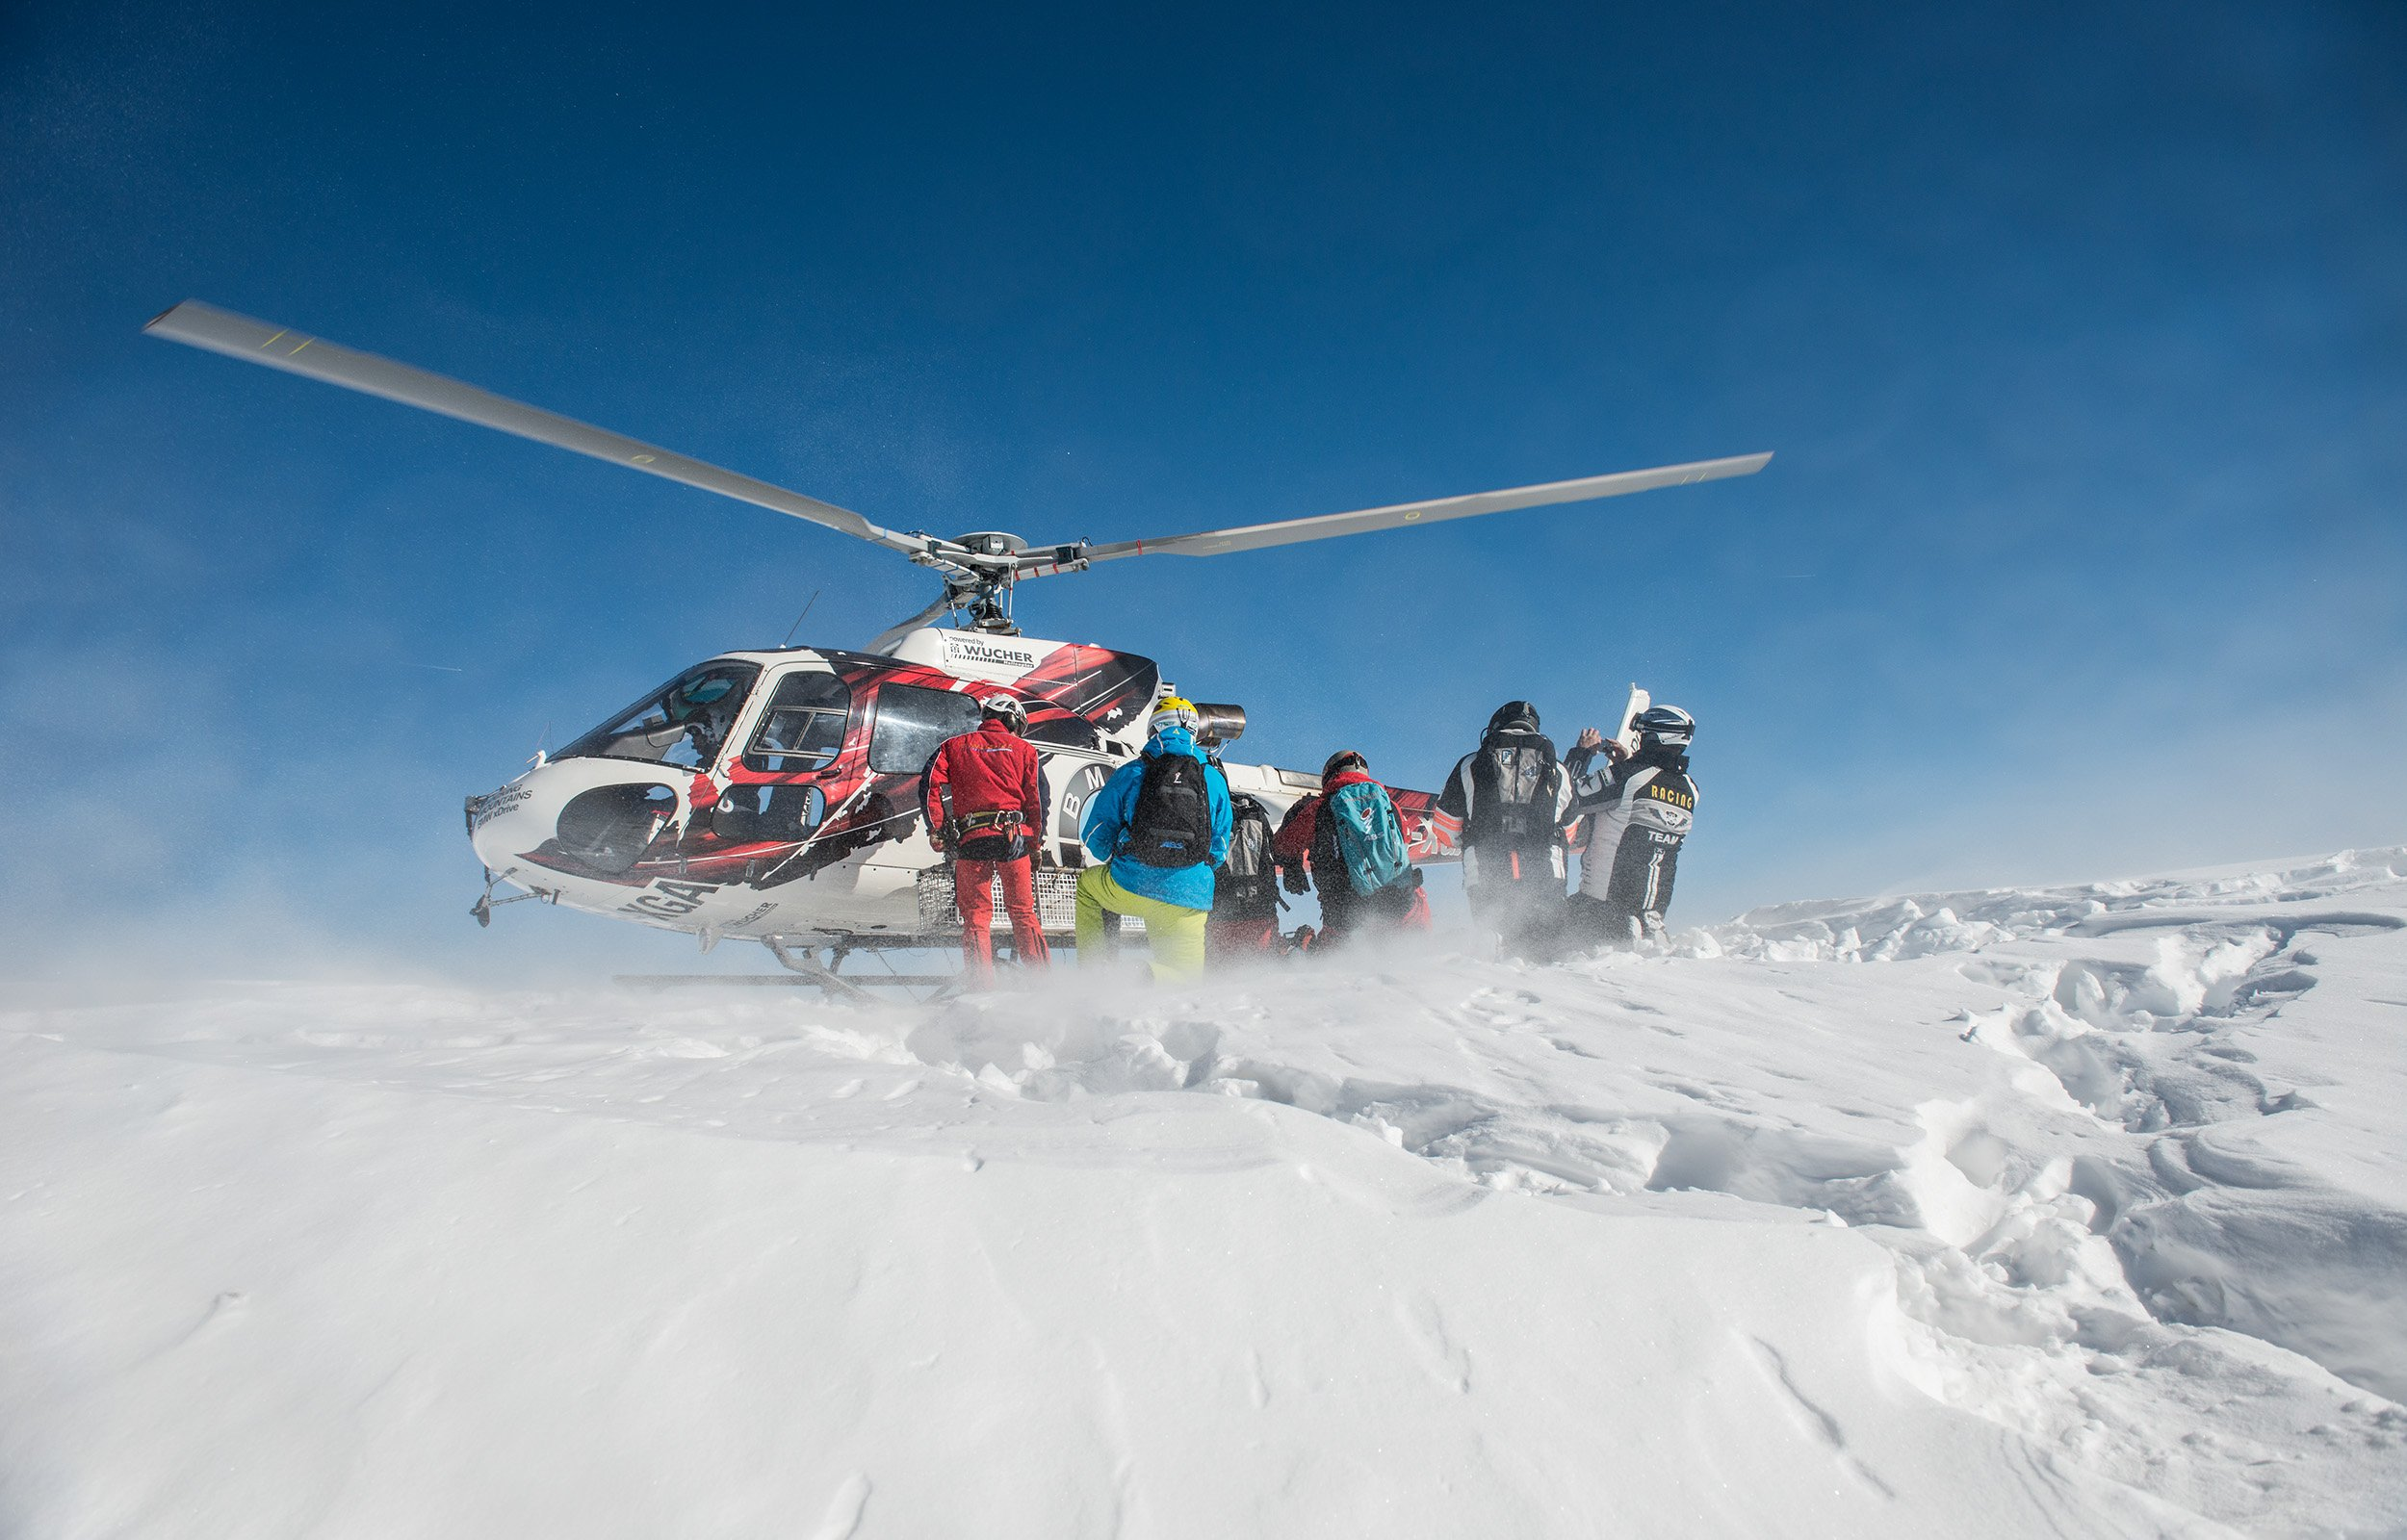 Sign up for guided heli skiing trips for beginners and experienced heliskiers